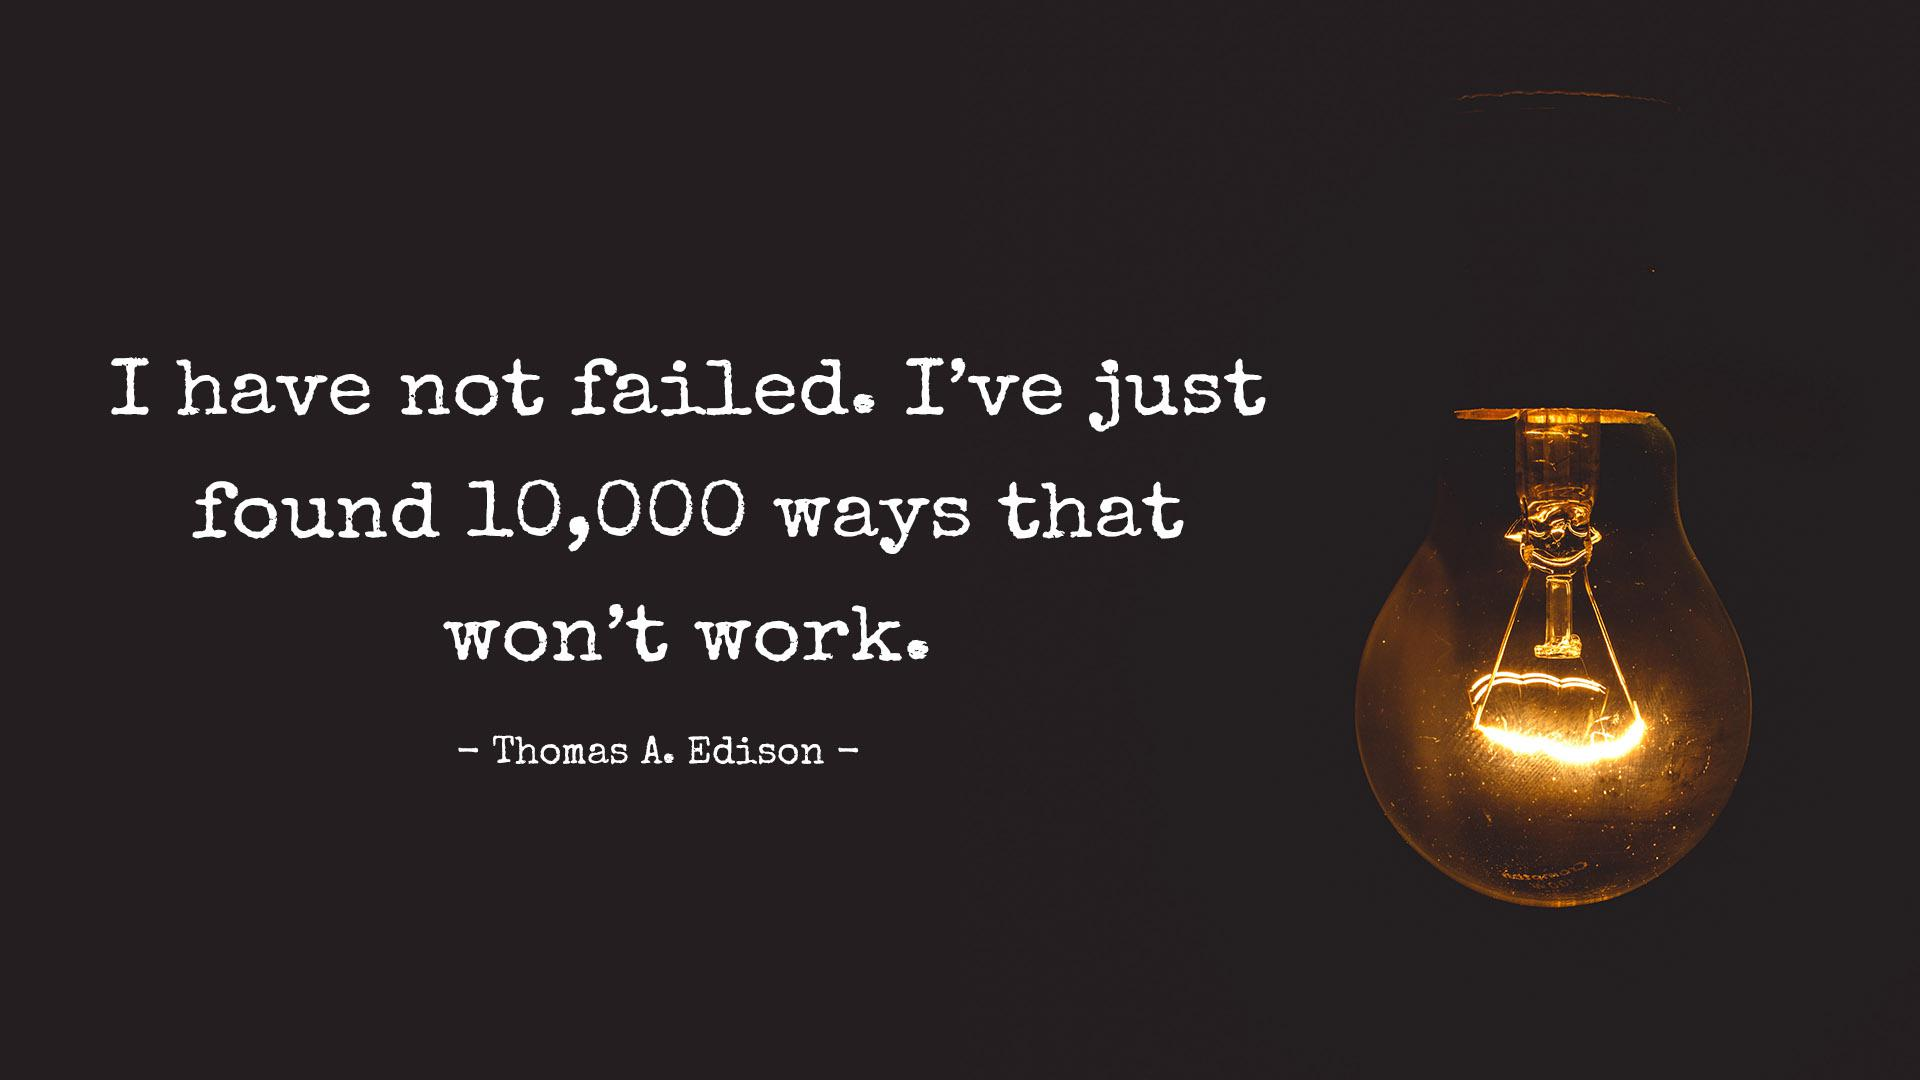 I have not failed. I've just found-Thomas A. Edison[1920×1080]